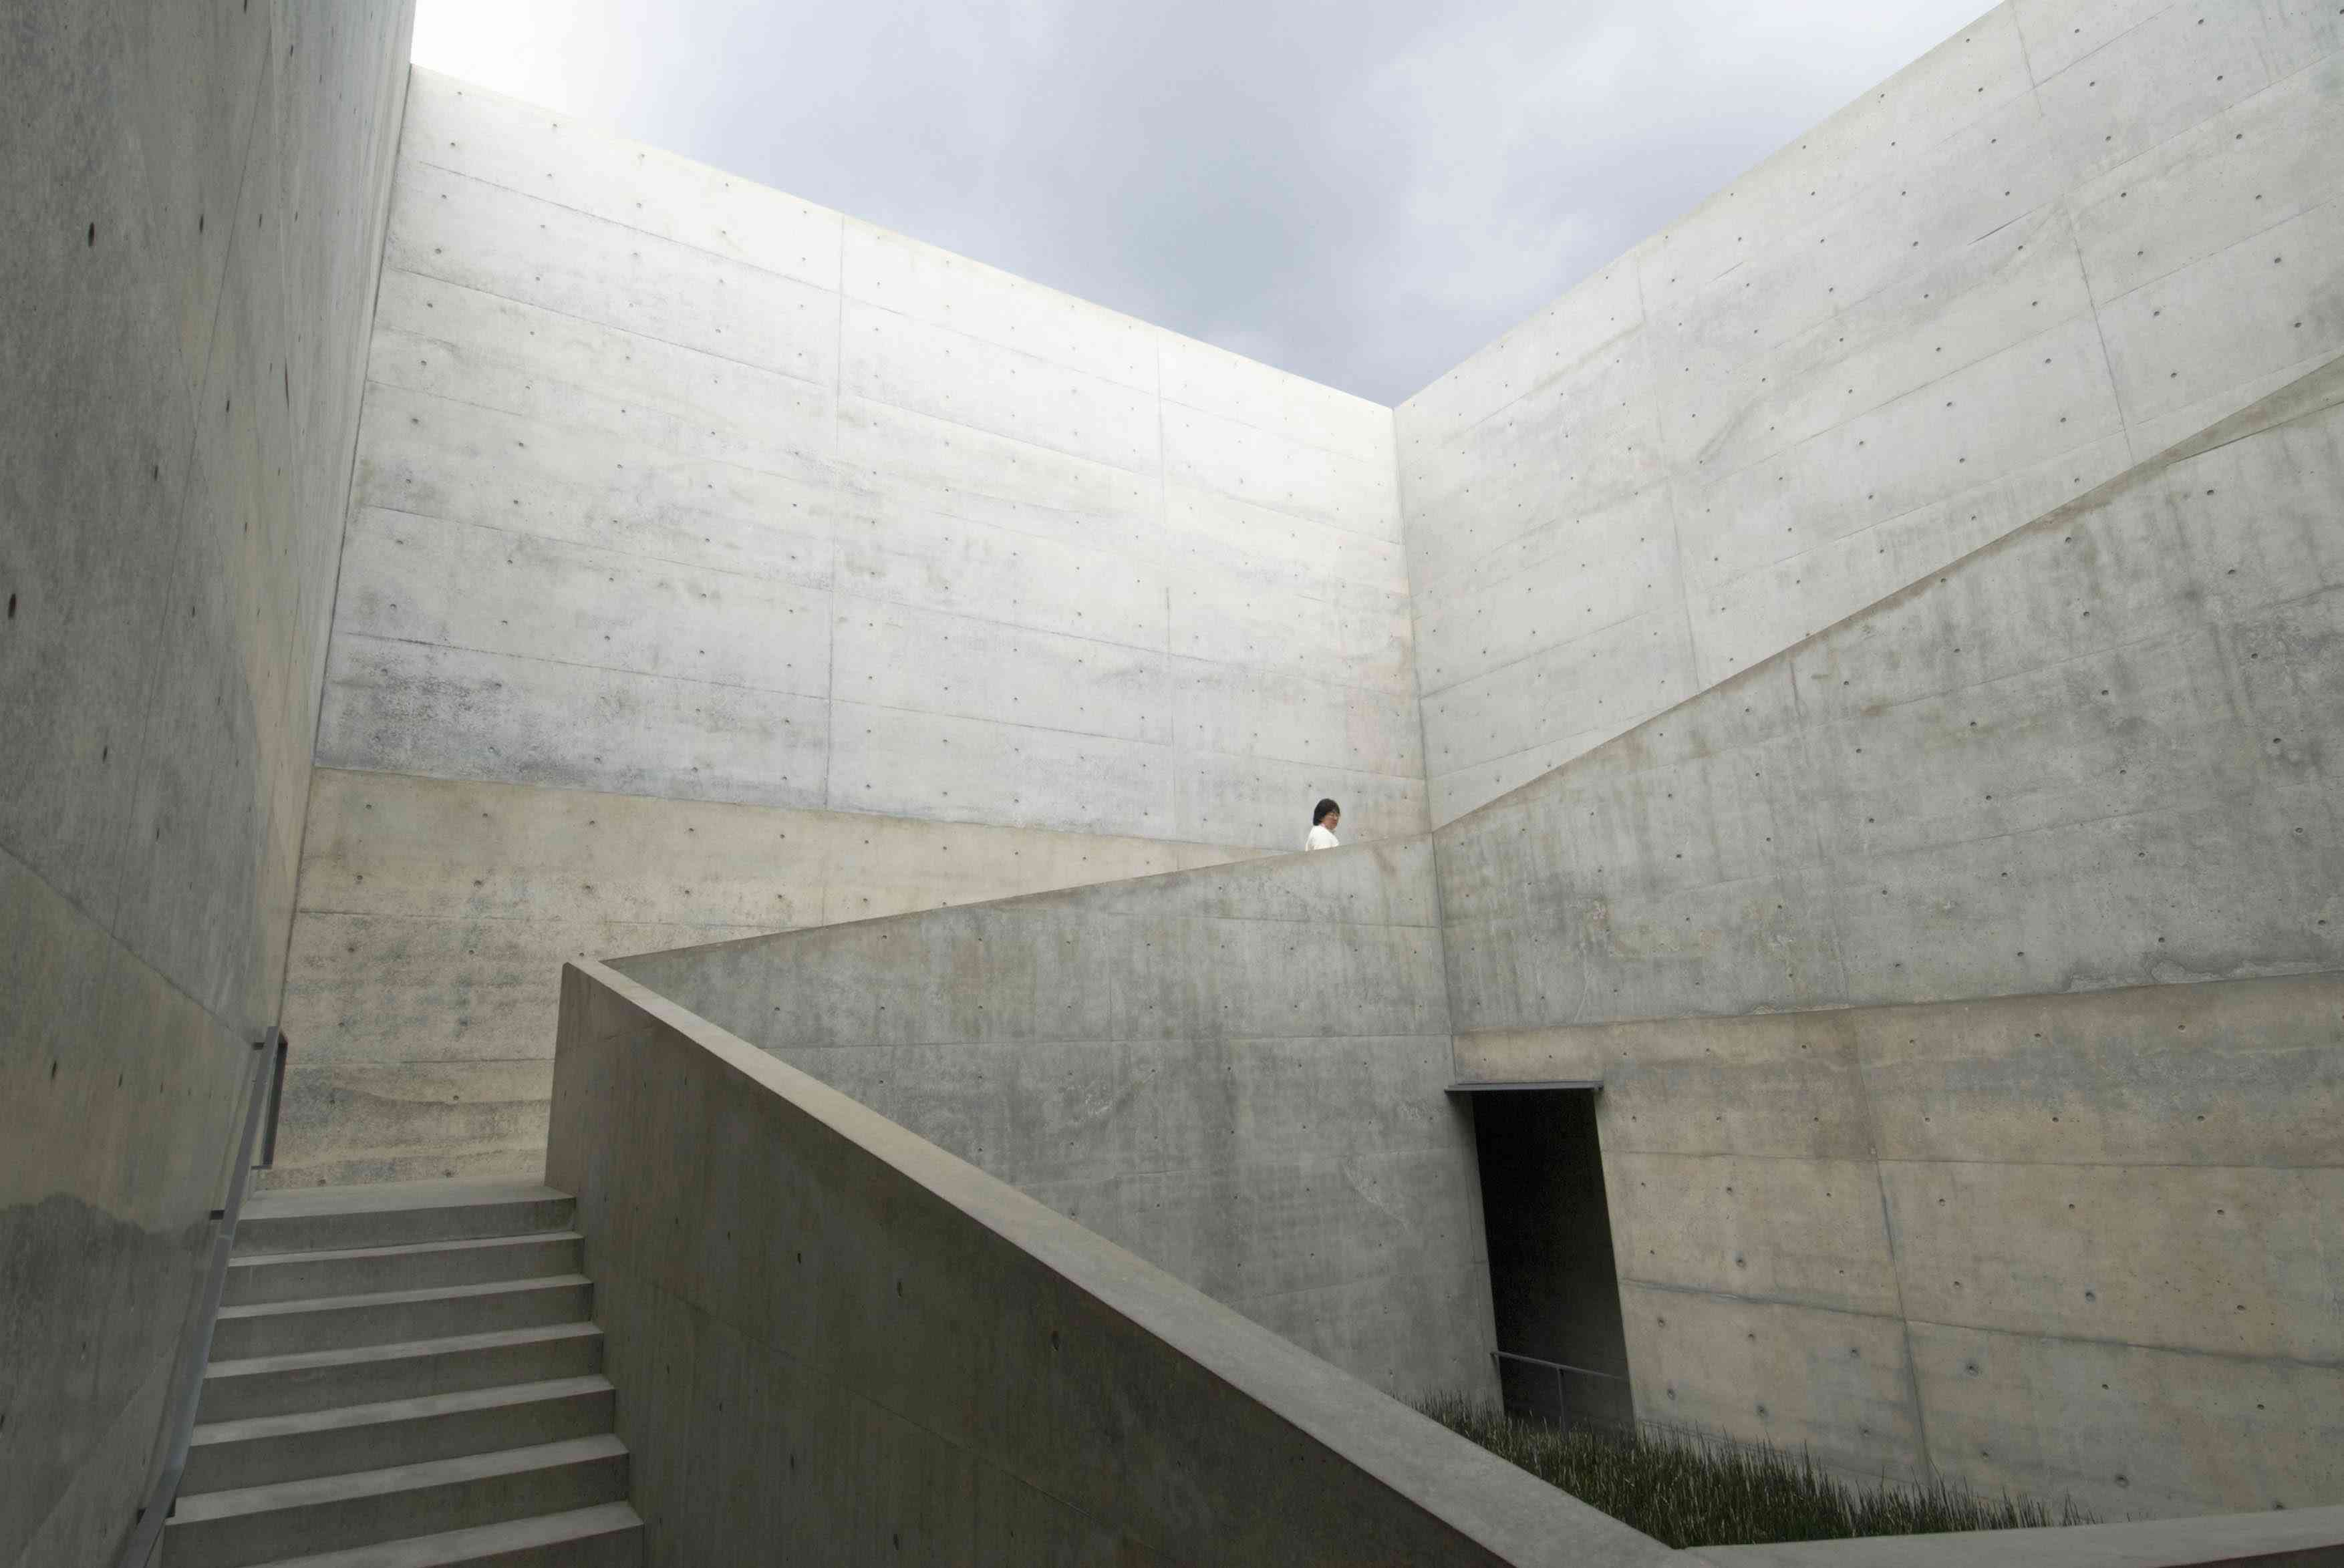 person in a white shirt walking up a staircase is a tall, concrete-colored structure